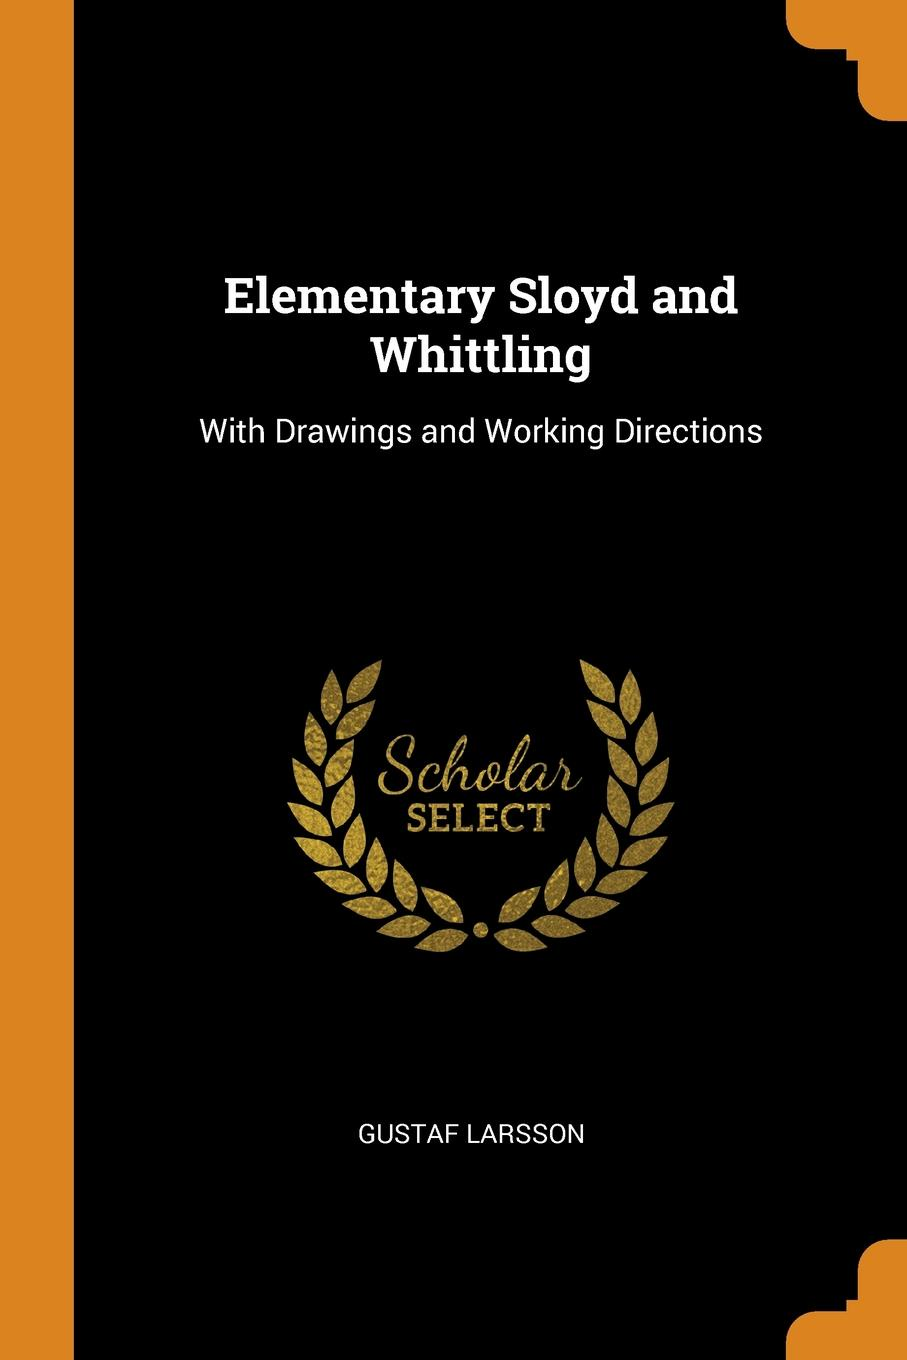 Gustaf Larsson. Elementary Sloyd and Whittling. With Drawings and Working Directions